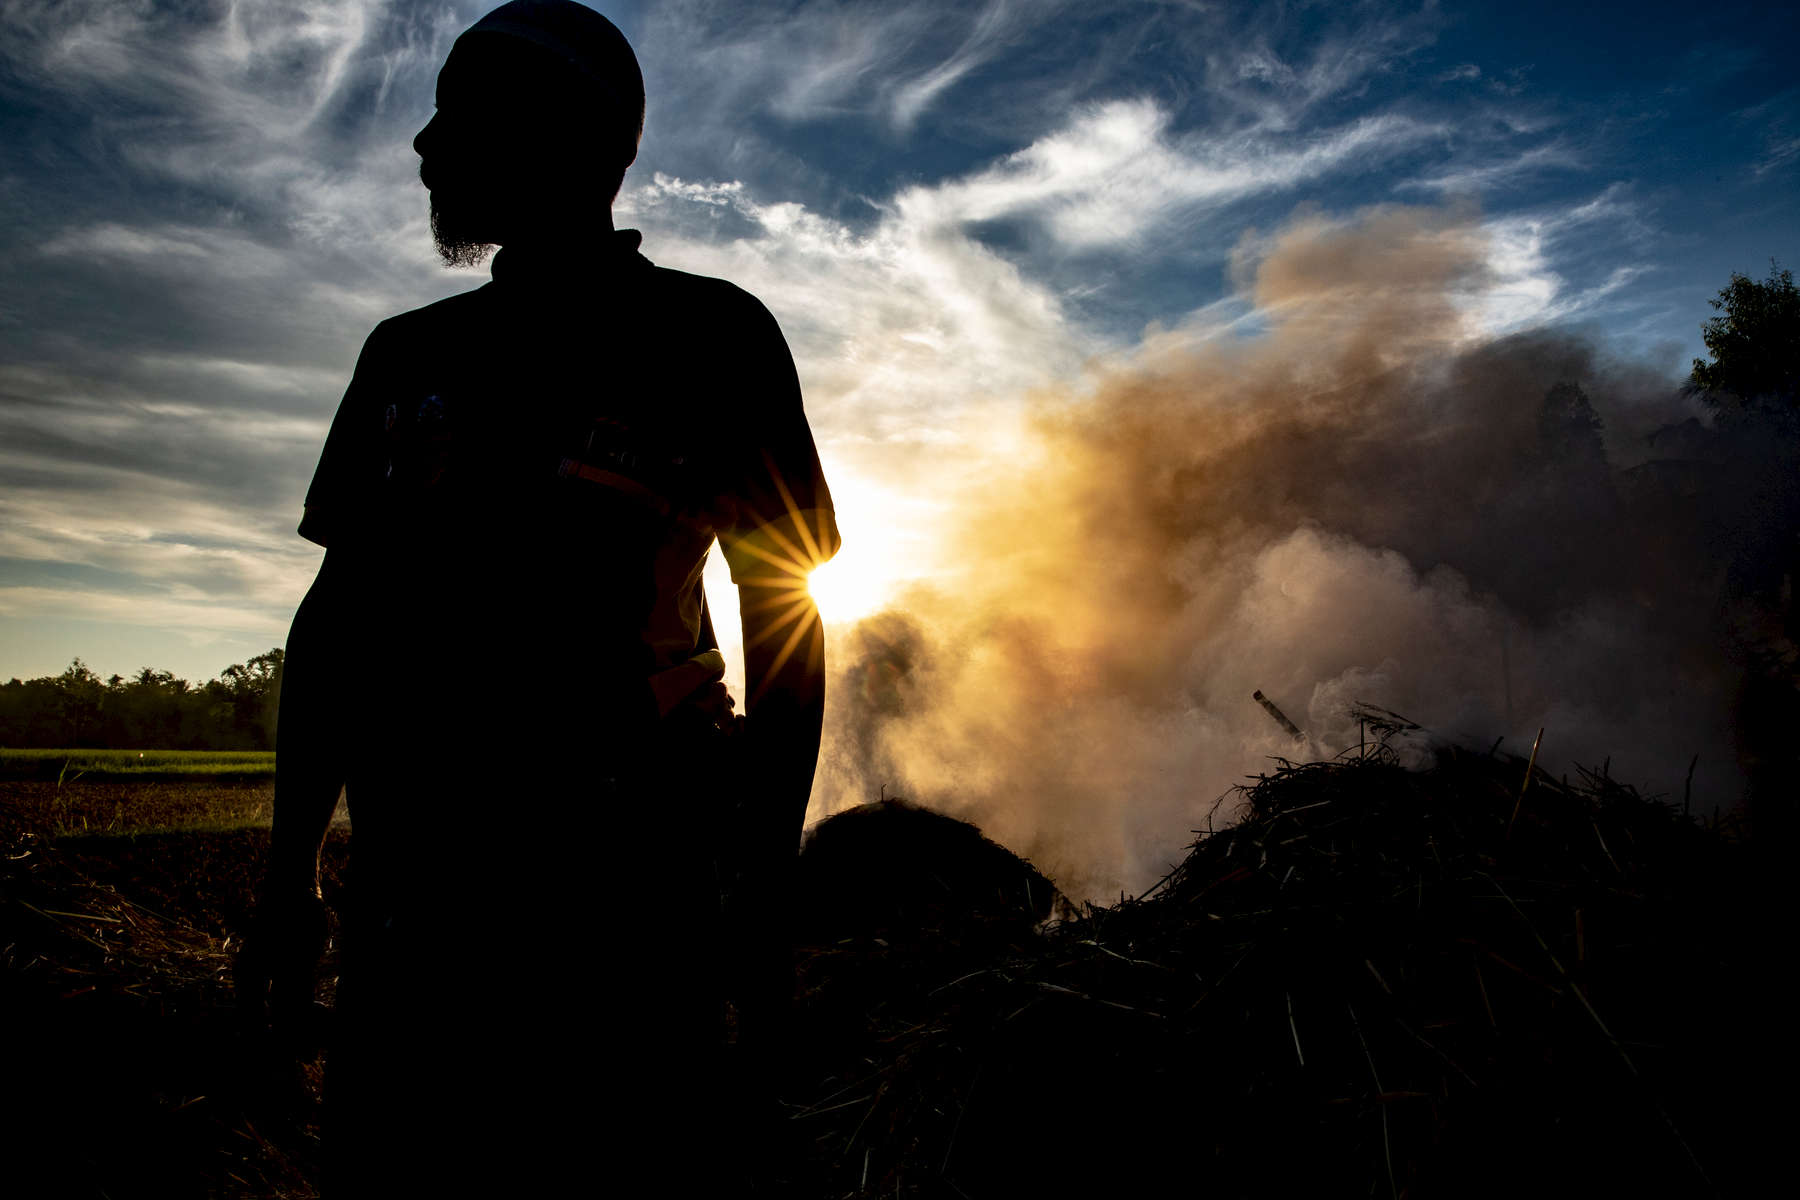 Muhammad Nuh Gazali, 39, stands among smoke from burning rice chaff at the end of a day of harvesting.  Indonesia's farmers help feed 249 million people. But climate change is threatening their way of life with longer droughts and erratic rainy seasons that threaten the harvests they rely on.In Indonesia, climate change is an ever-present reality. The average temperature in Lombok has risen nearly three degrees since 1948, and is predicted to rise another two degrees by 2060—a dangerous reality for farmers who depend on the climate to survive.Droughts in Lombok can last for months and threaten the precious harvests that farmers rely on. Rainfall in Indonesia has decreased by 3 percent since 1900 and climate change is expected to get worse over the next 50 years.Lombok is predicted to experience a massive decline in water reserves by 2030, threatening the island's farmers and the people who rely on their harvests to survive.In just 20 years, the risk of crop failure due to climate change is expected to double on Lombok.In one of the world's most vulnerable places to climate change, Mercy Corps has helped more than 6,000 farmers increase their yields and the incomes that support their families. Over the next three years, Mercy Corps aims to help 20,000 rice farmers in Indonesia increase their incomes by at least 28 percent.Mercy Corps teaches rice farmers how to select the best seeds to plant and the best time of year to plant them, as well as how to detect and treat disease.